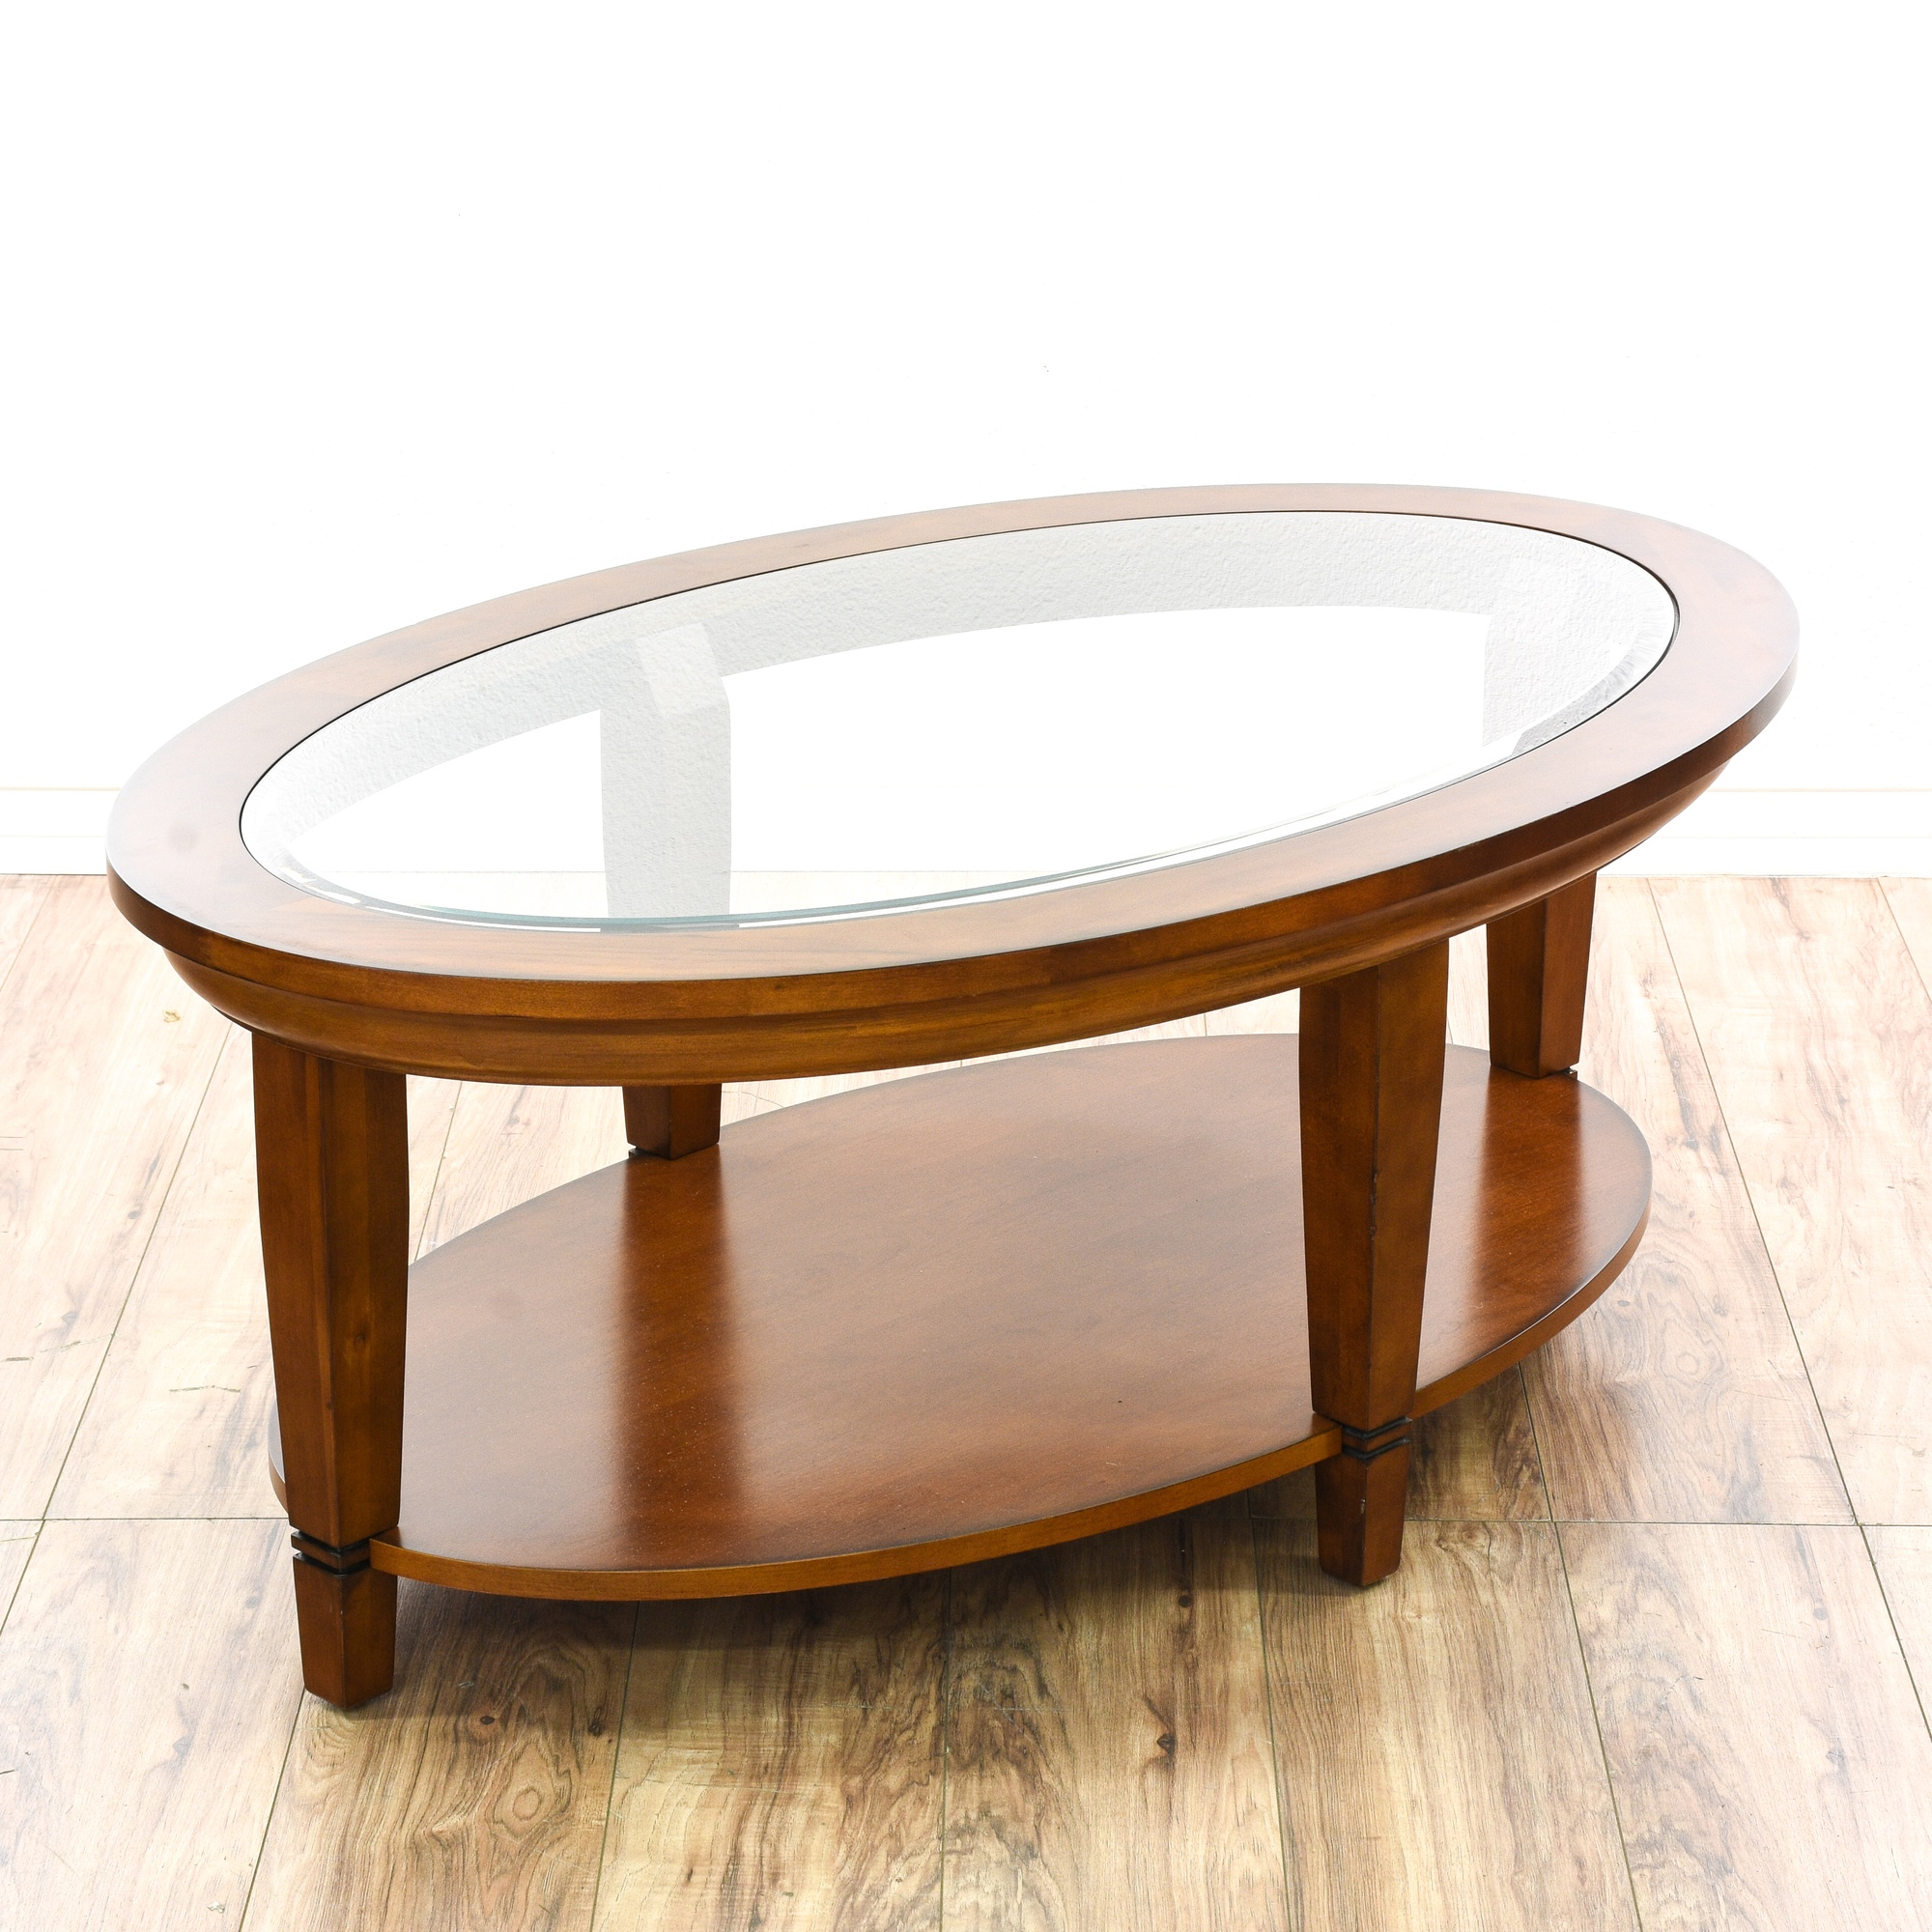 Contemporary Tiered Oval Glass Top Coffee Table